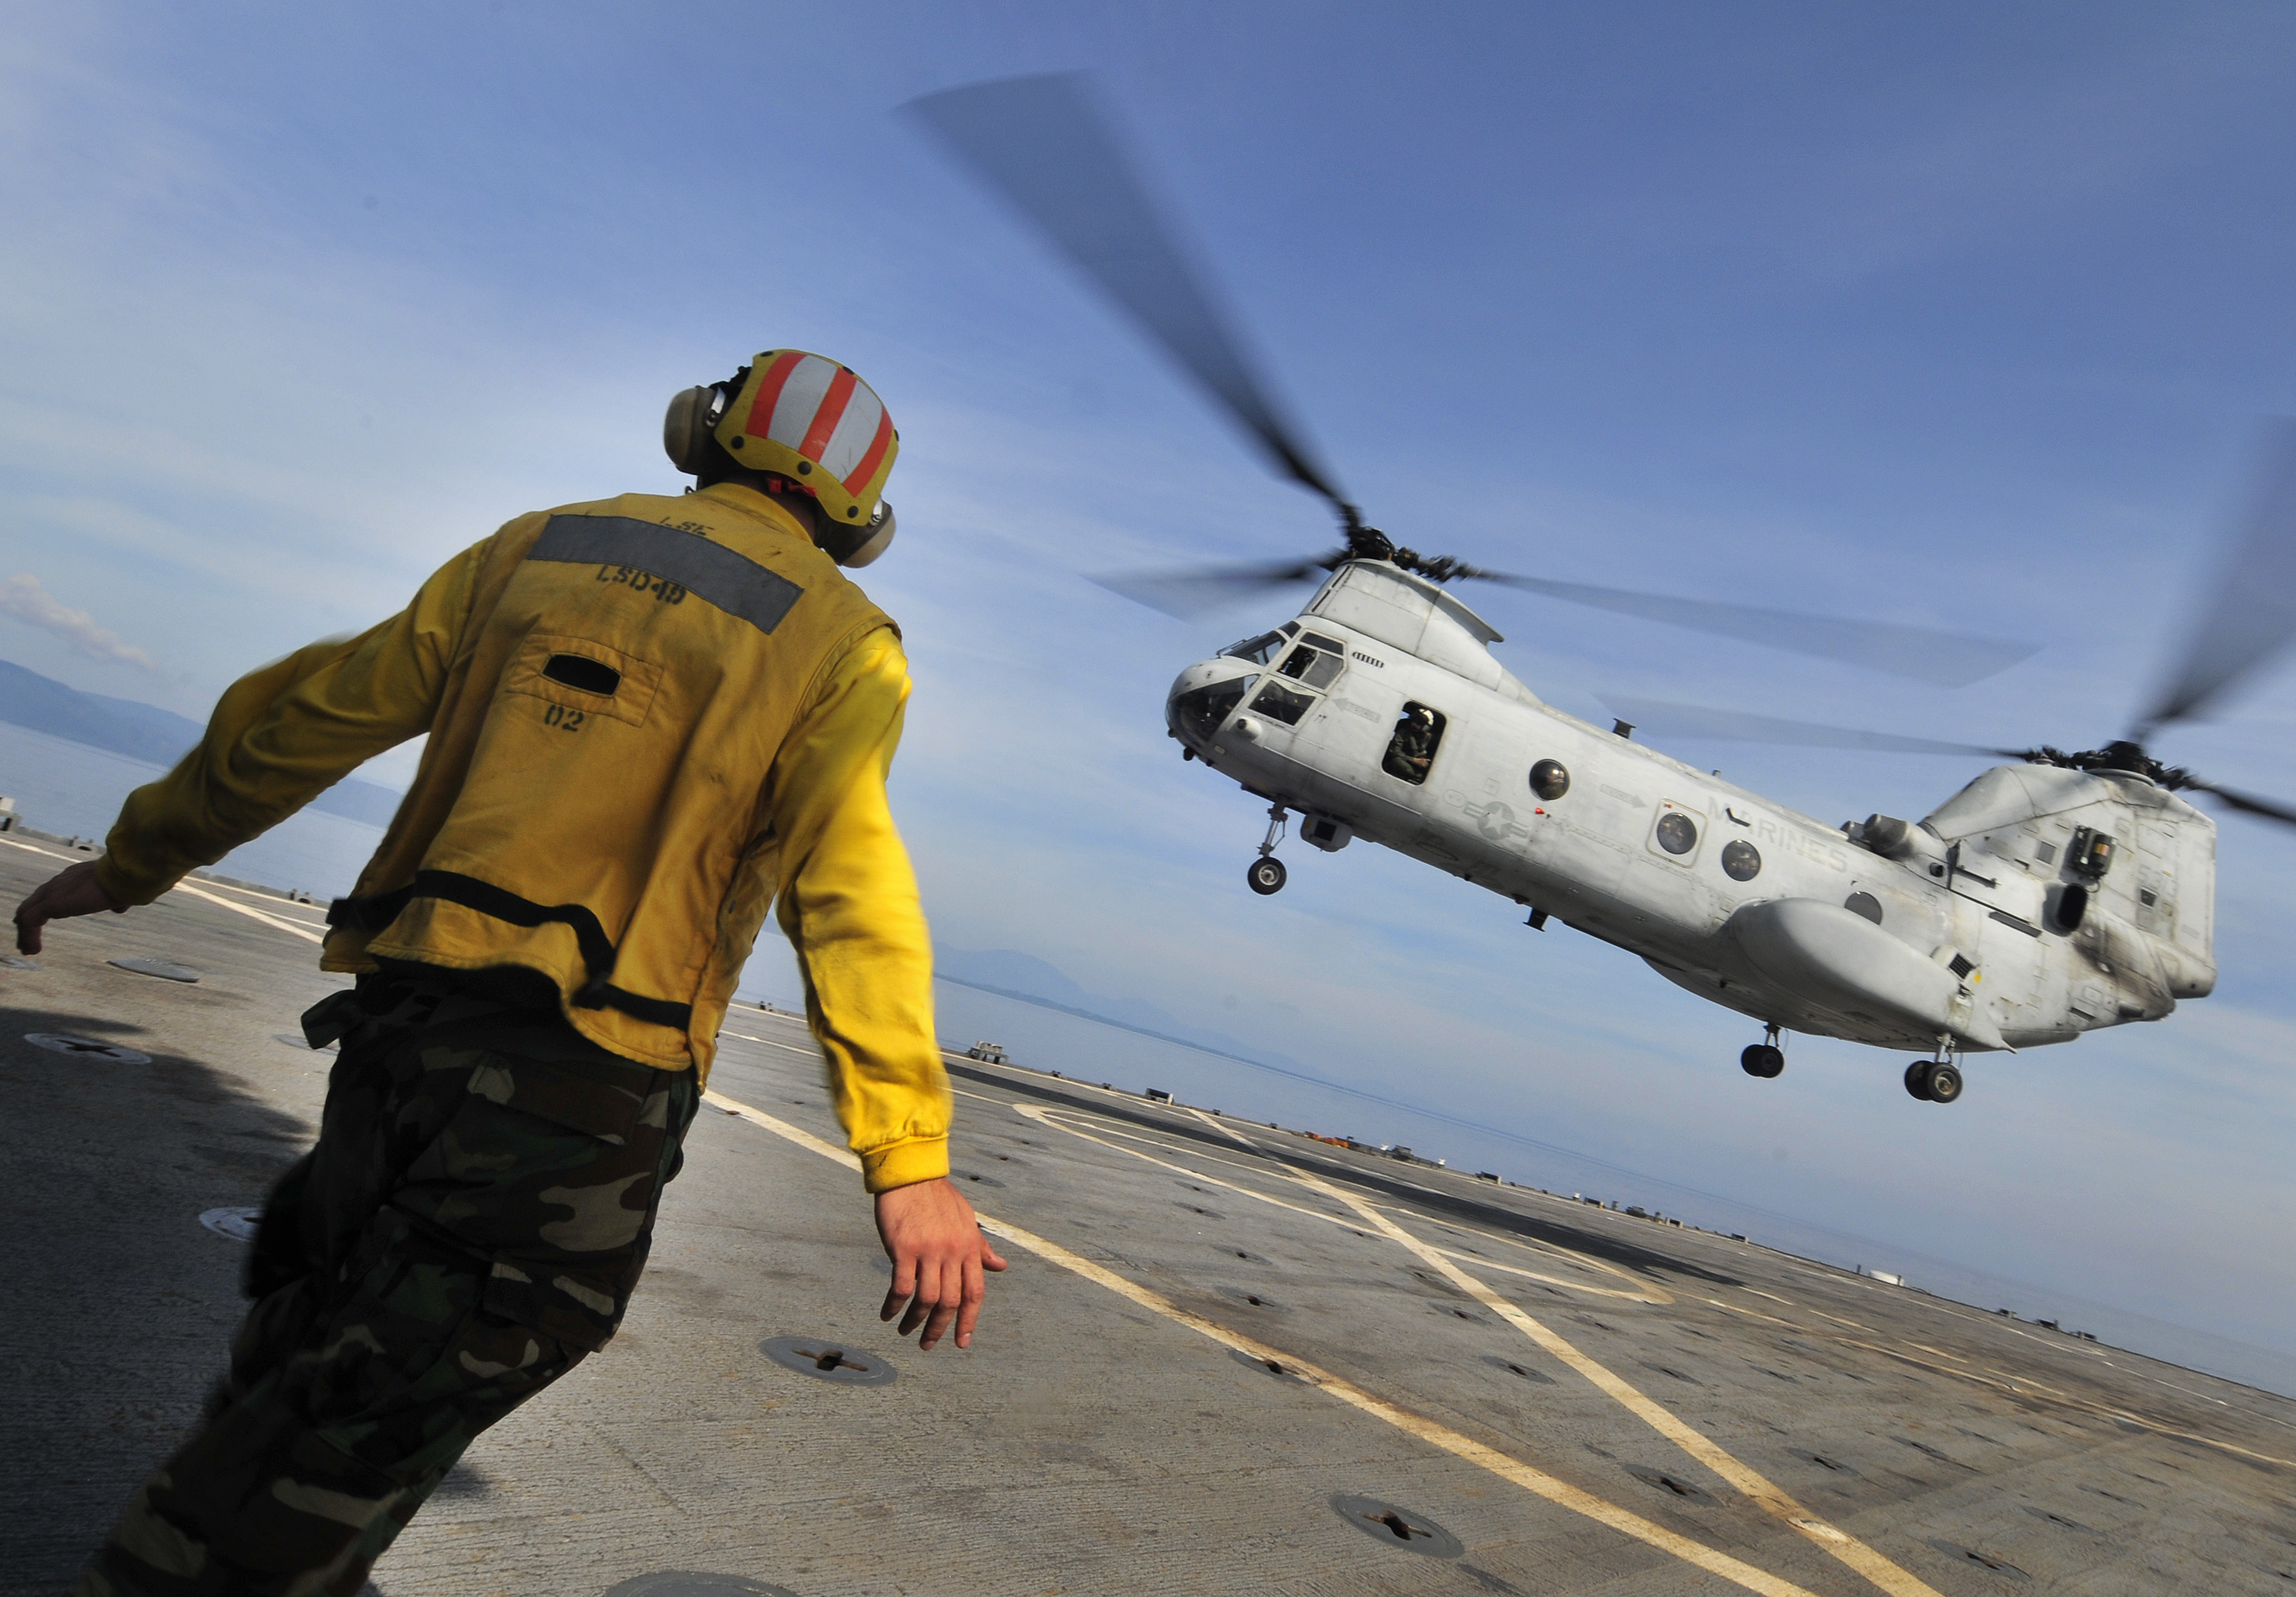 US Navy 091020-N-0807W-406 Aviation Boatswain's Mate (Handling) Airman Zachary D. Bruton signals to a Marine Corps CH-46 Sea Knight helicopter aboard the amphibious dock landing ship USS Harpers Ferry (LSD 49)